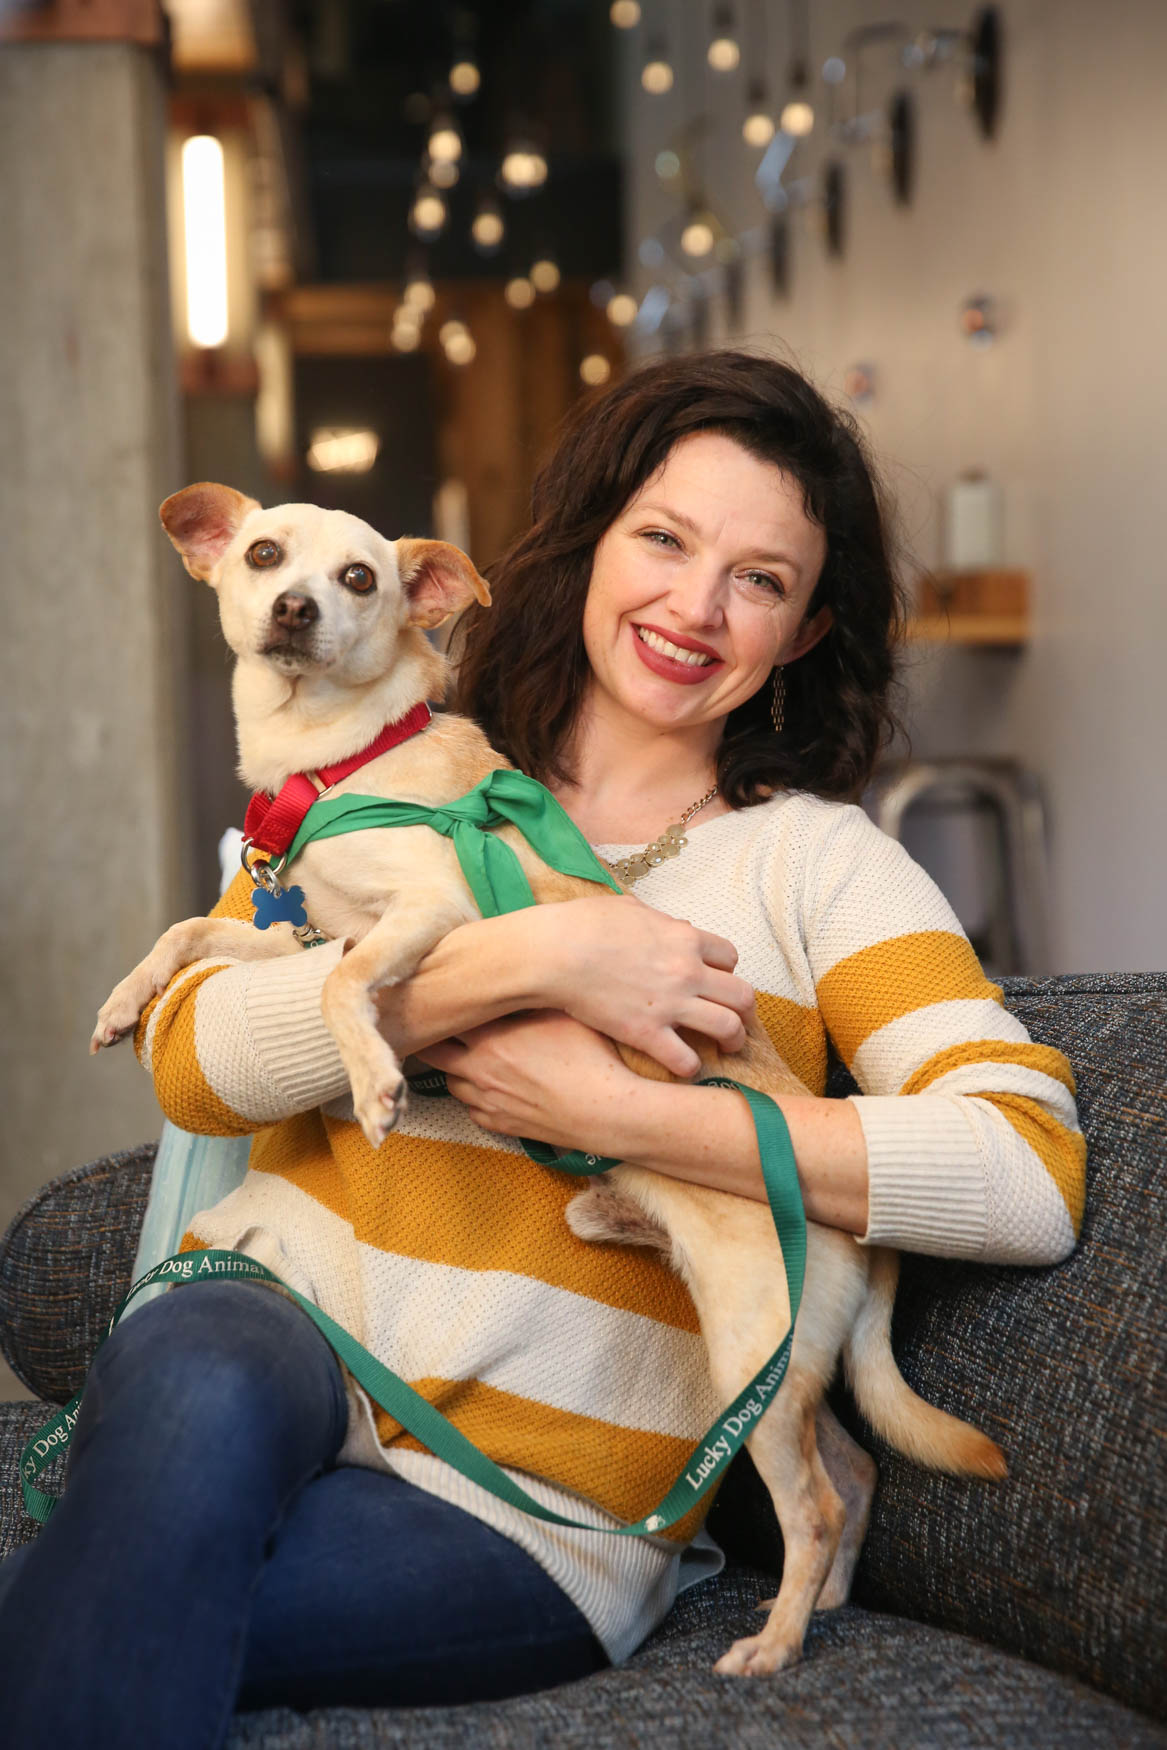 Meet Joaquin and Stephanie, a 3/4-year-old Chihuahua mix and a 30-year-old human respectively. Photo location: Moxy Washington, D.C. Downtown (Image: Amanda Andrade-Rhoades/ DC Refined)